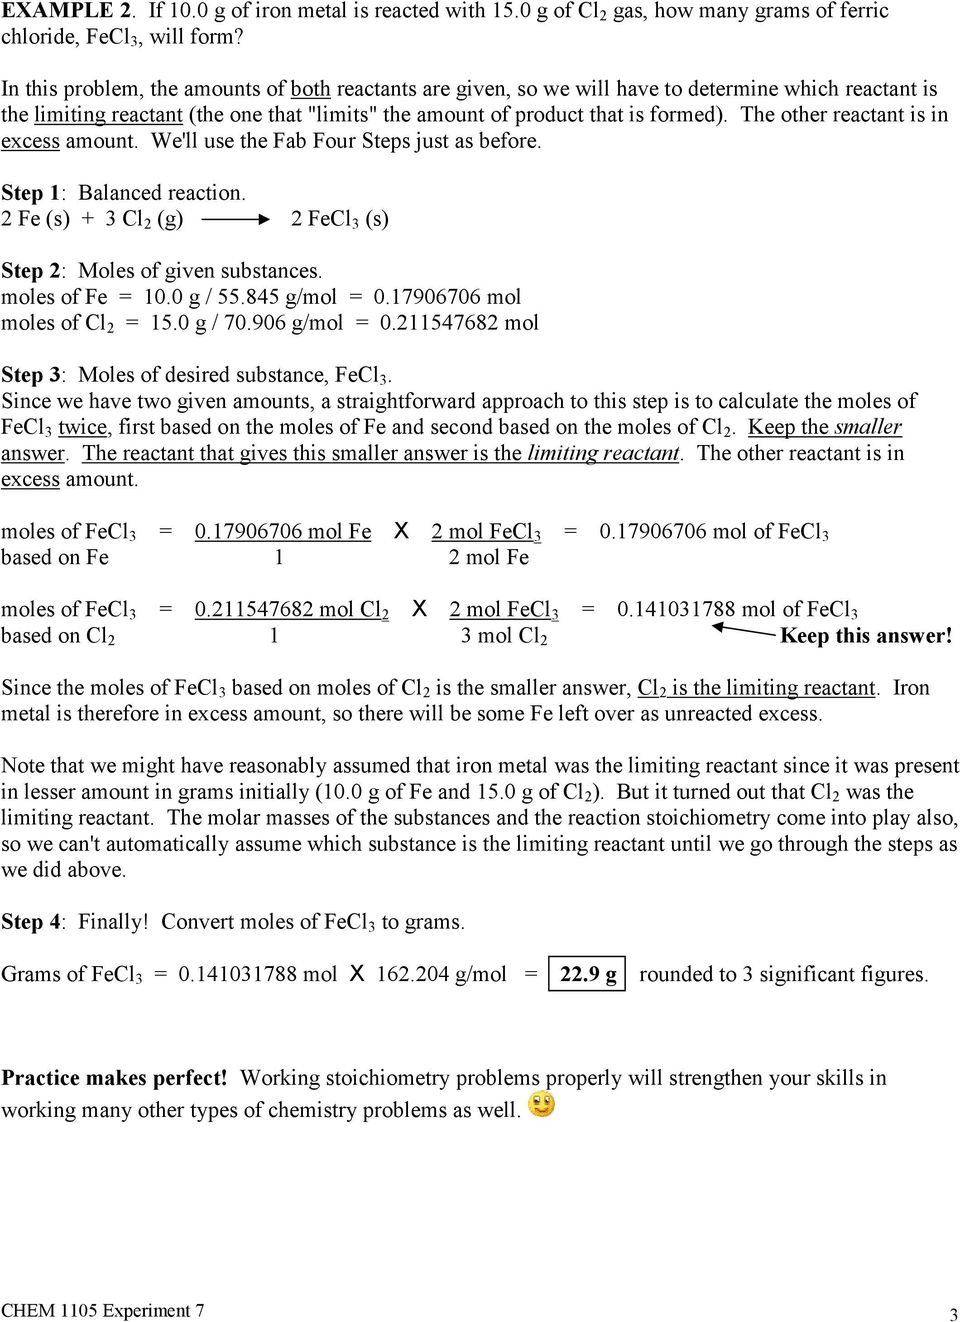 Chem 1105 Experiment 7 Answers